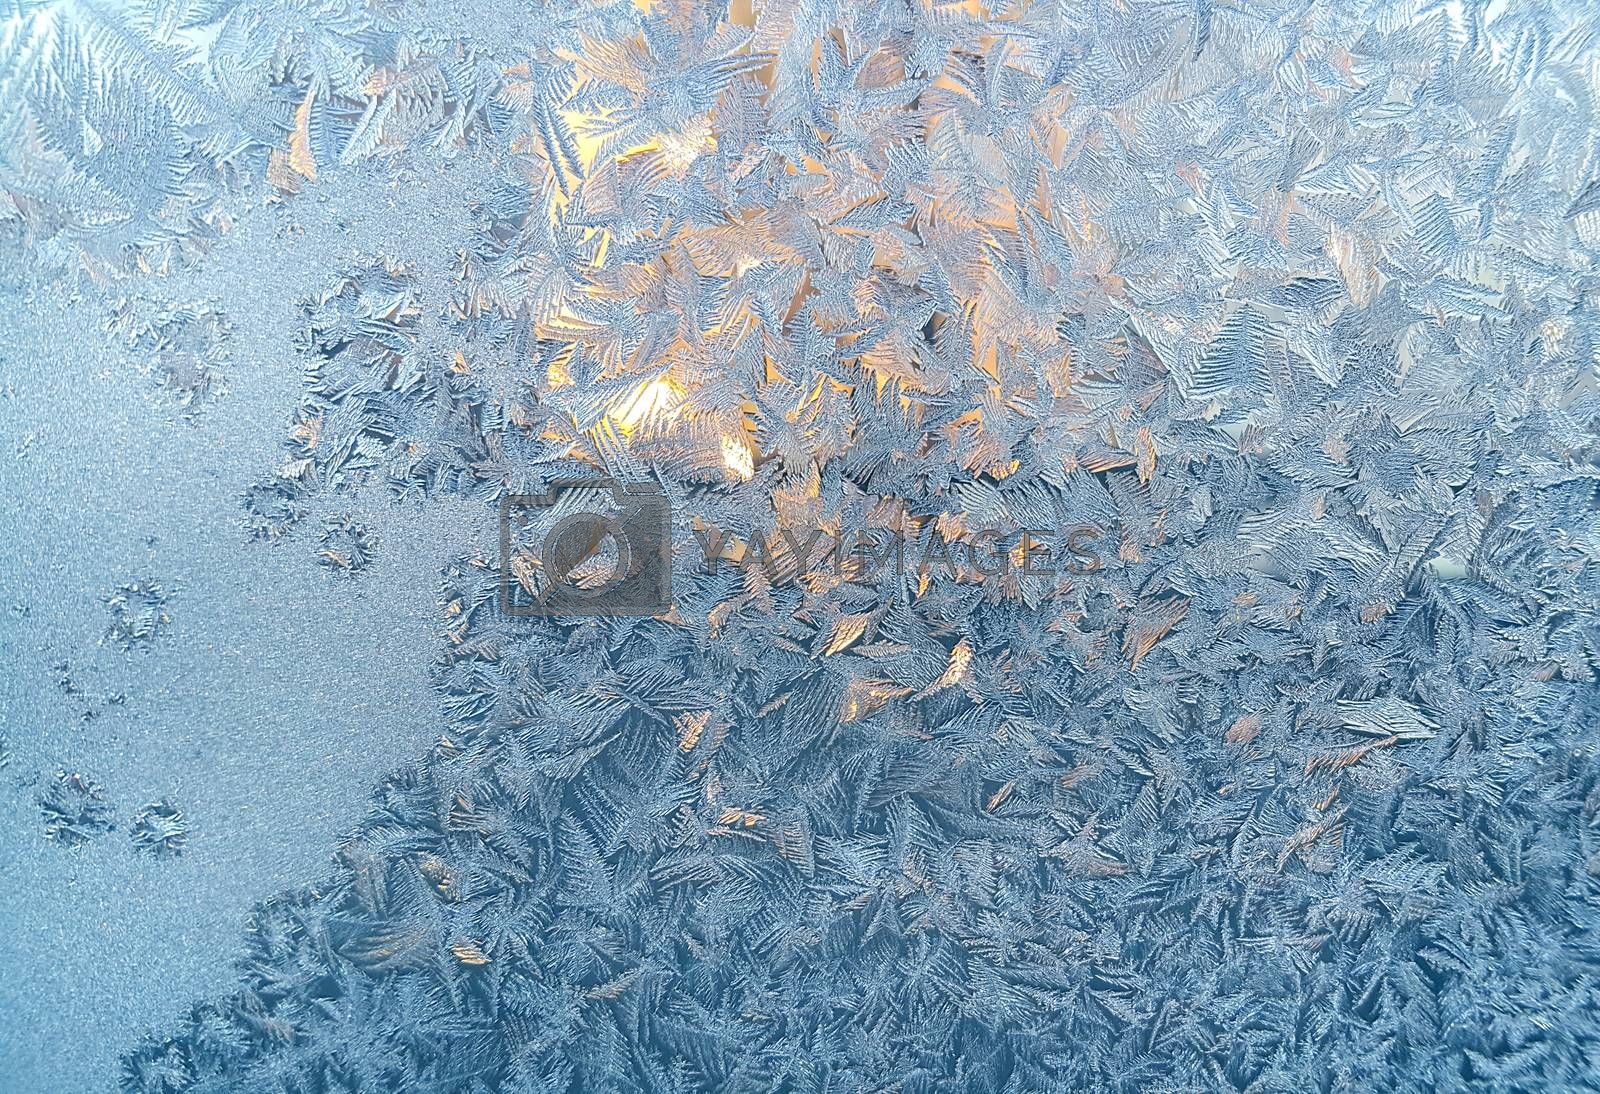 Ice pattern on winter glass by dink101